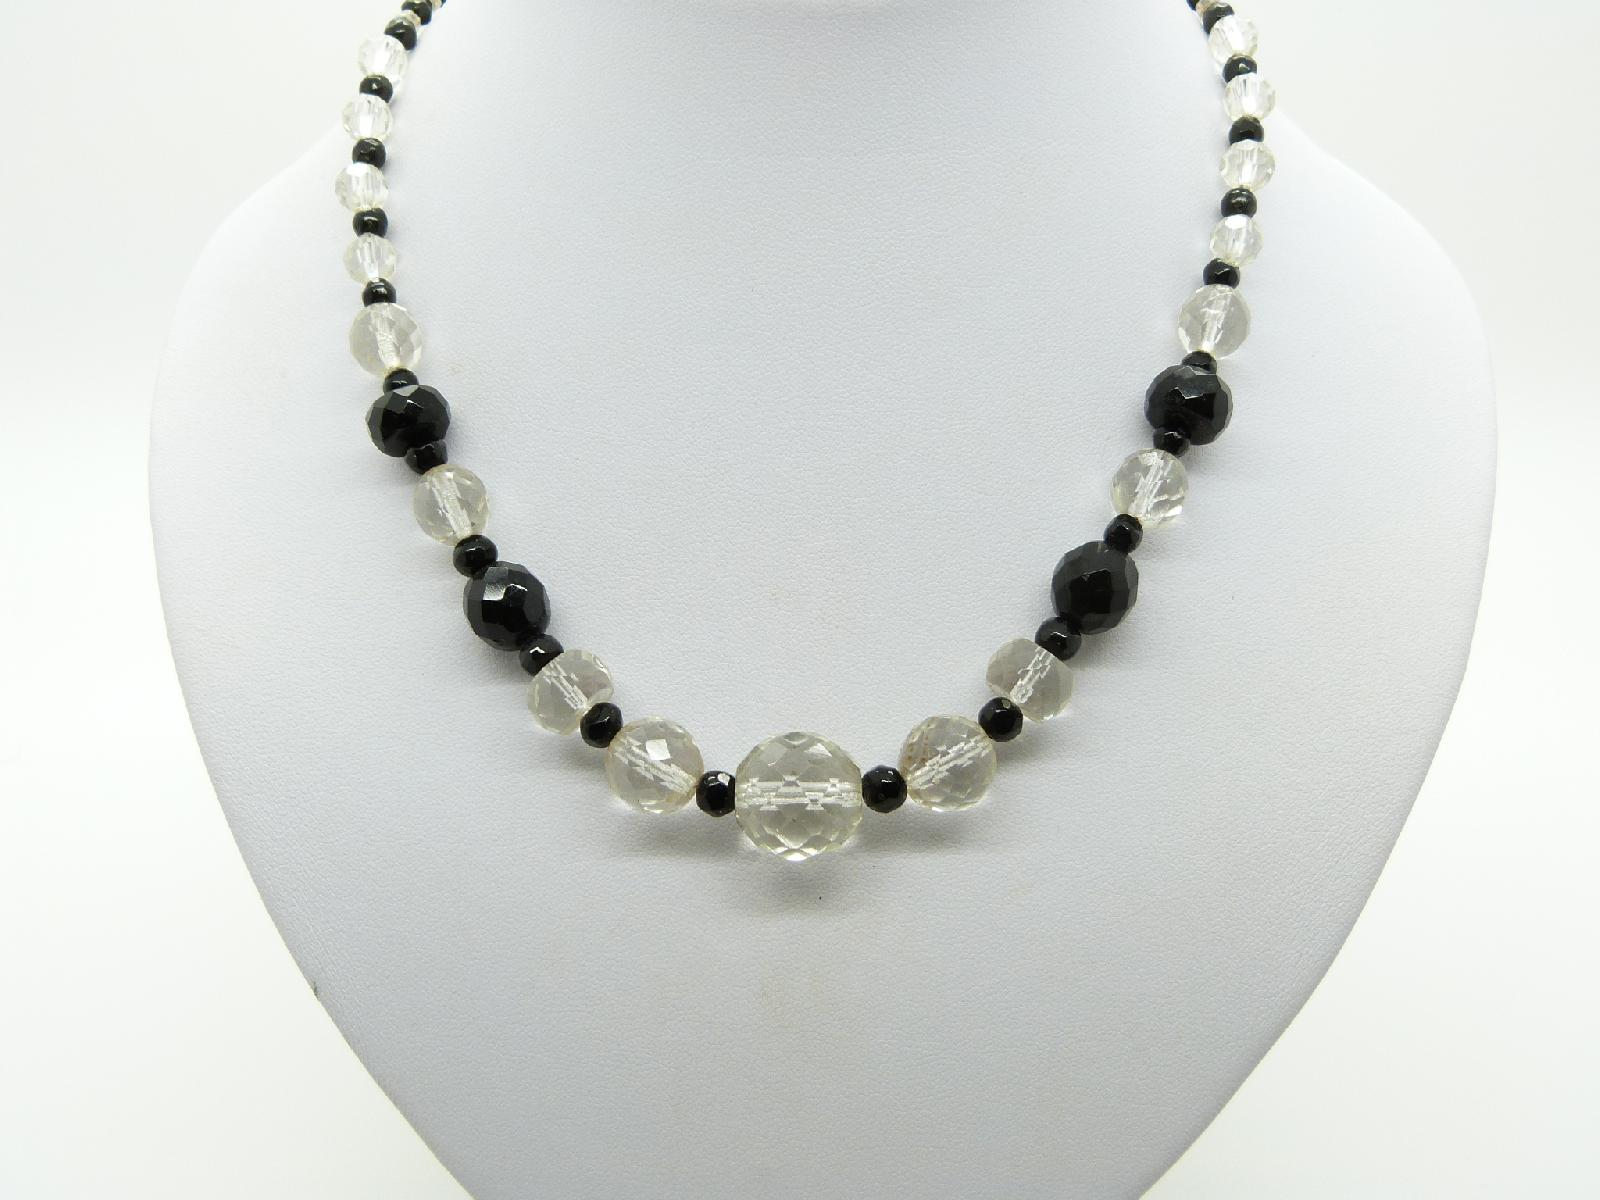 £24.00 - Vintage 30s Art Deco Monochrome Black and White Crystal Glass Bead Necklace